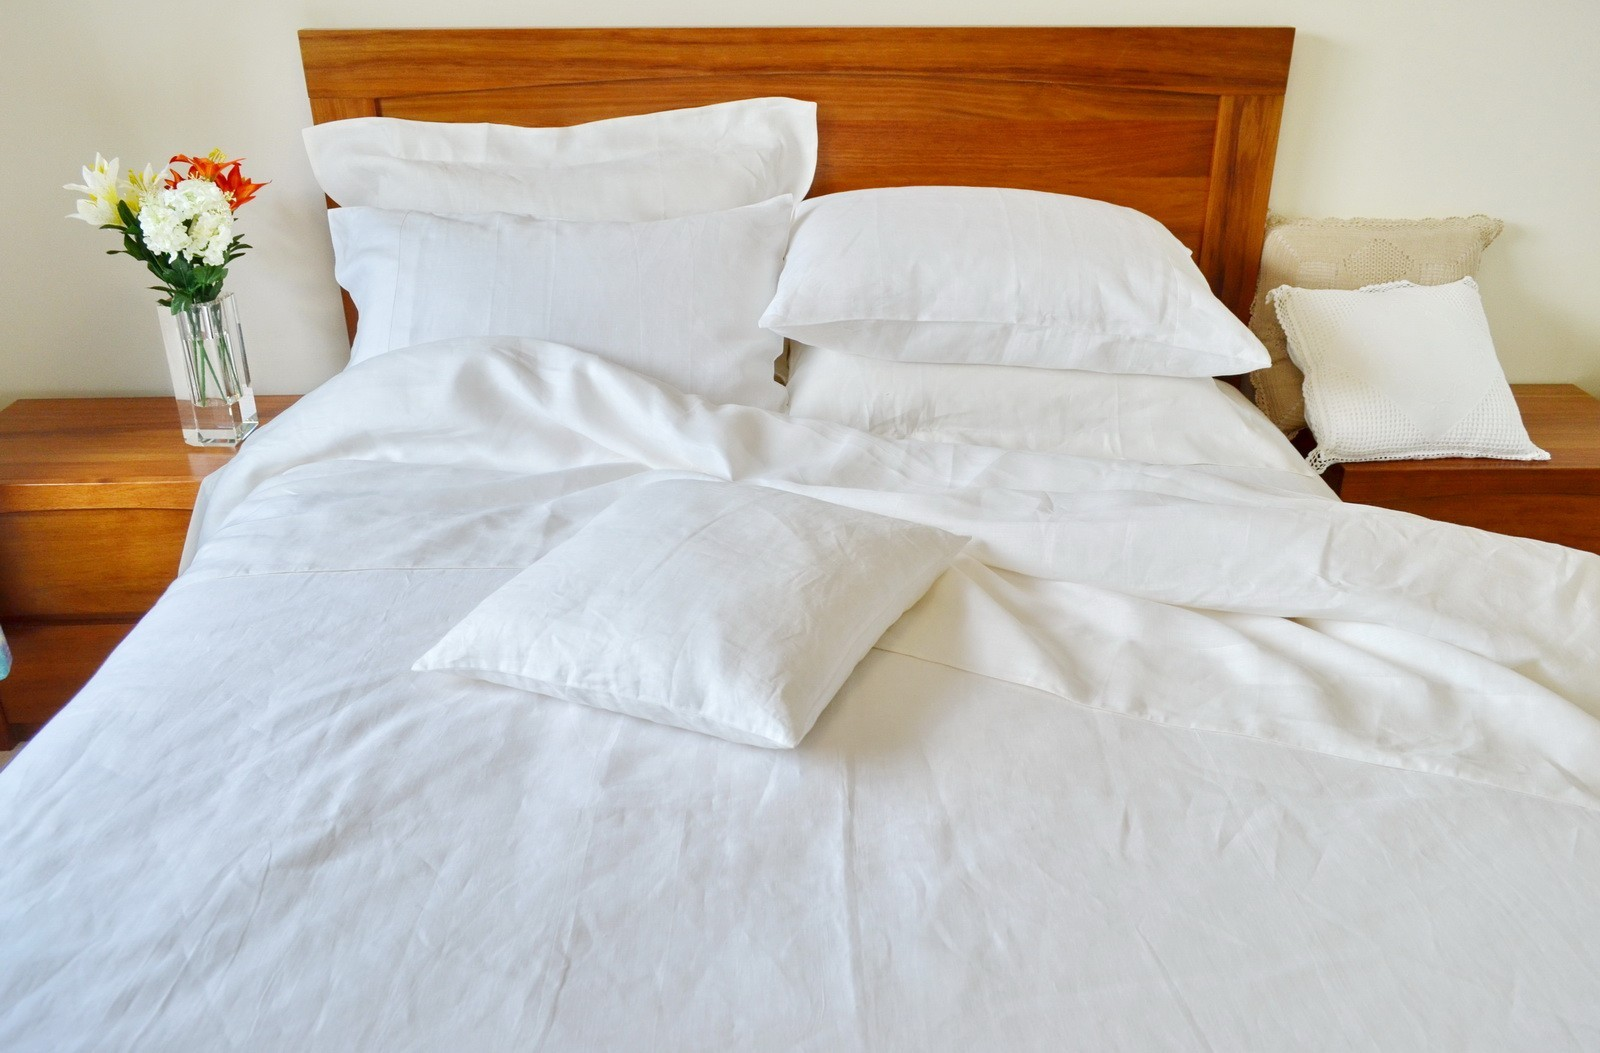 Pure Linen Sheets Queen Size Plain White